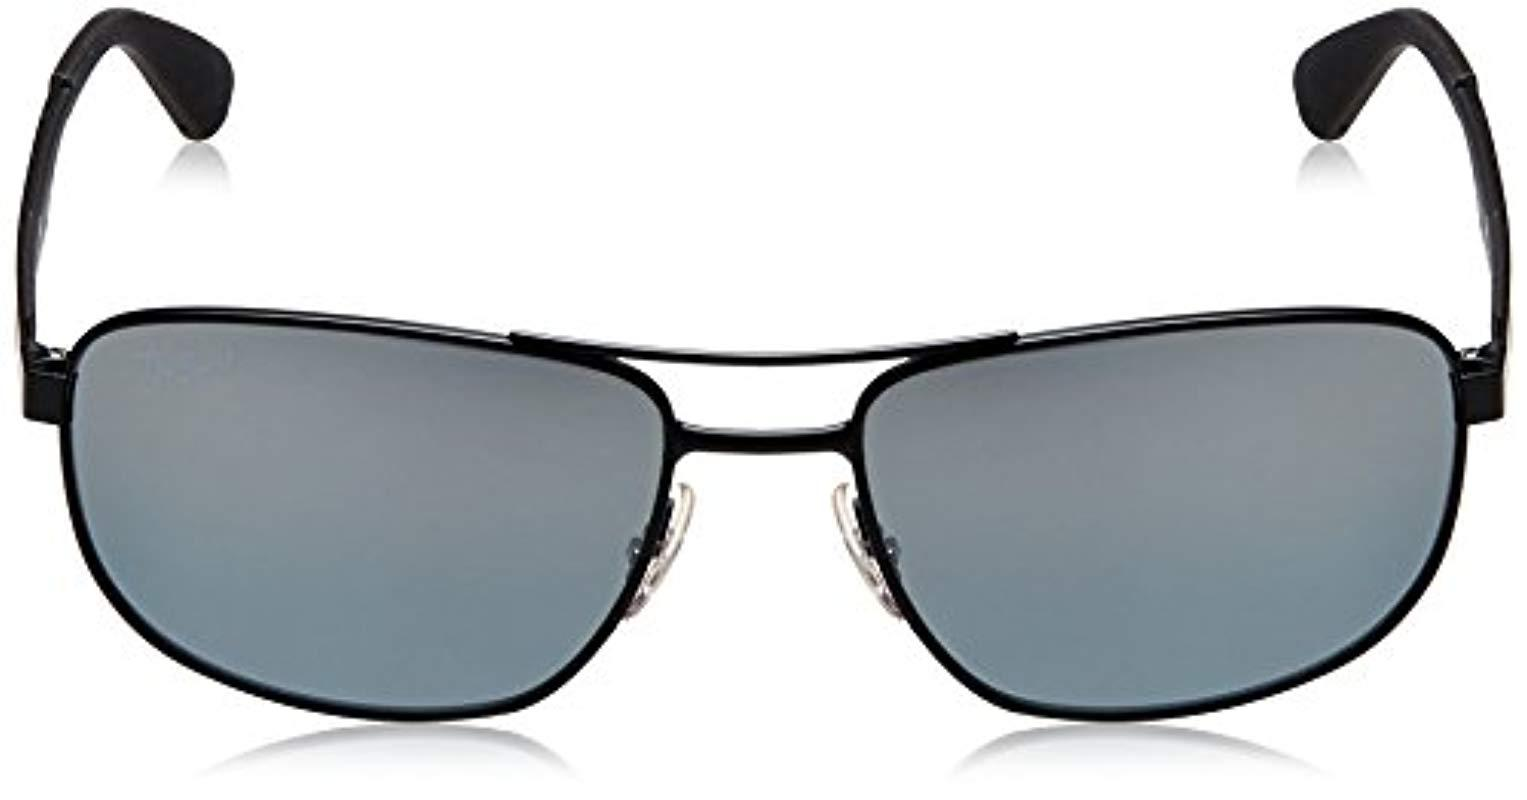 032a162306 Ray-Ban - Metal Sunglasses In Matte Black Green Rb3528 006 71 61 for. View  fullscreen